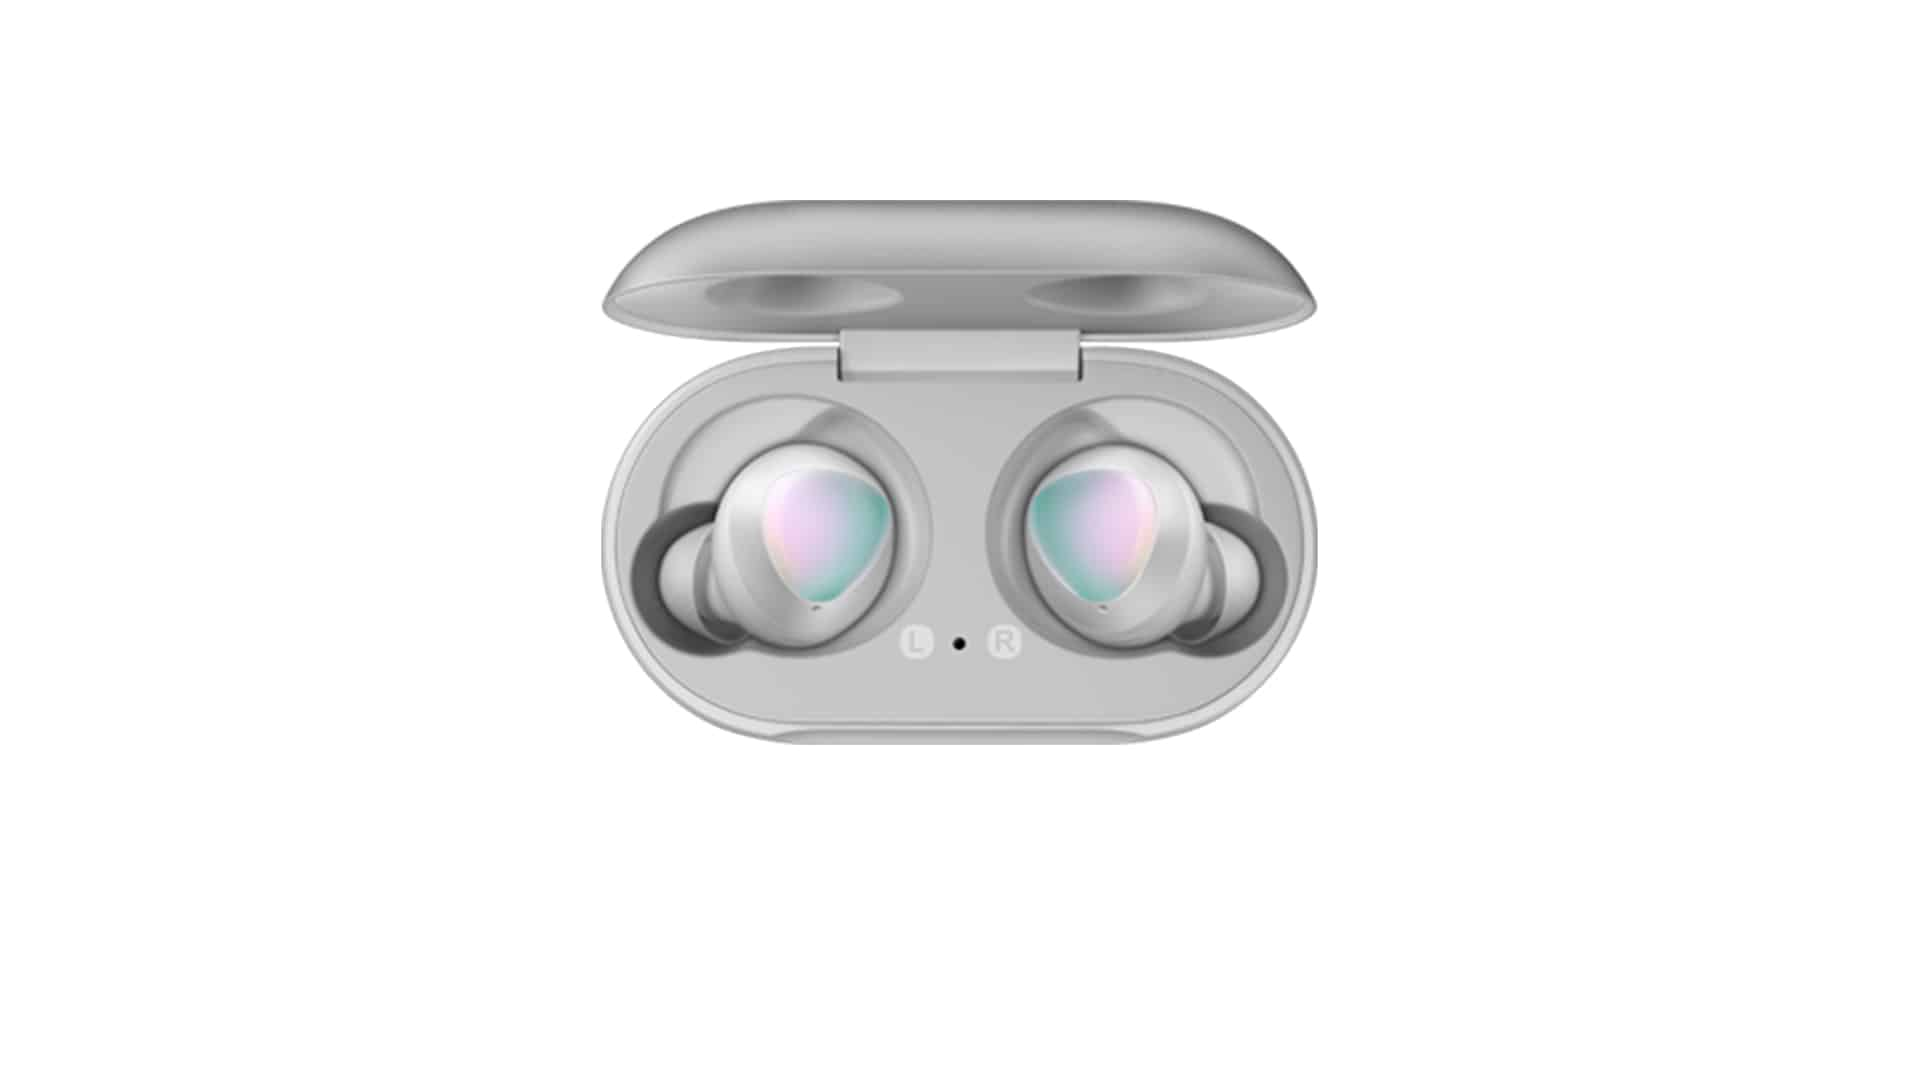 Samsung Galaxy Buds now available in new Silver Color Option